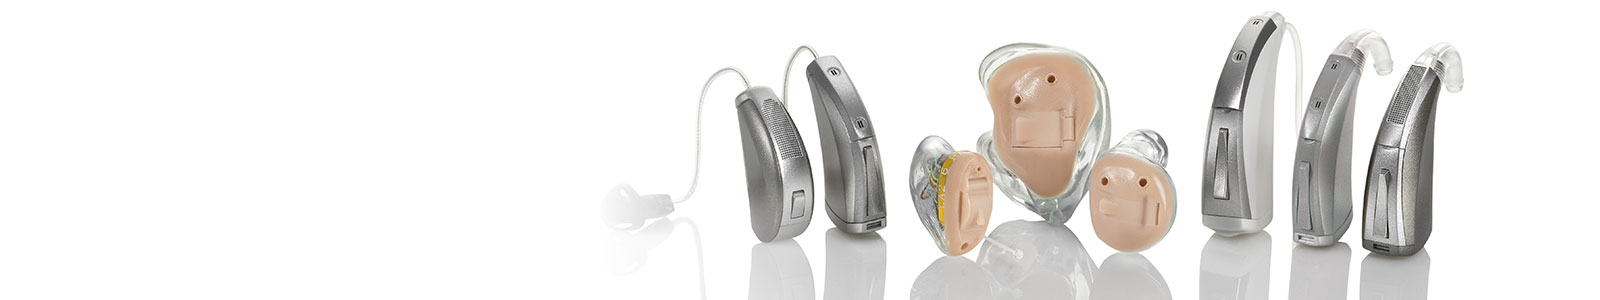 Starkey Hearing Aids - Reimagining what a hearing aid can do